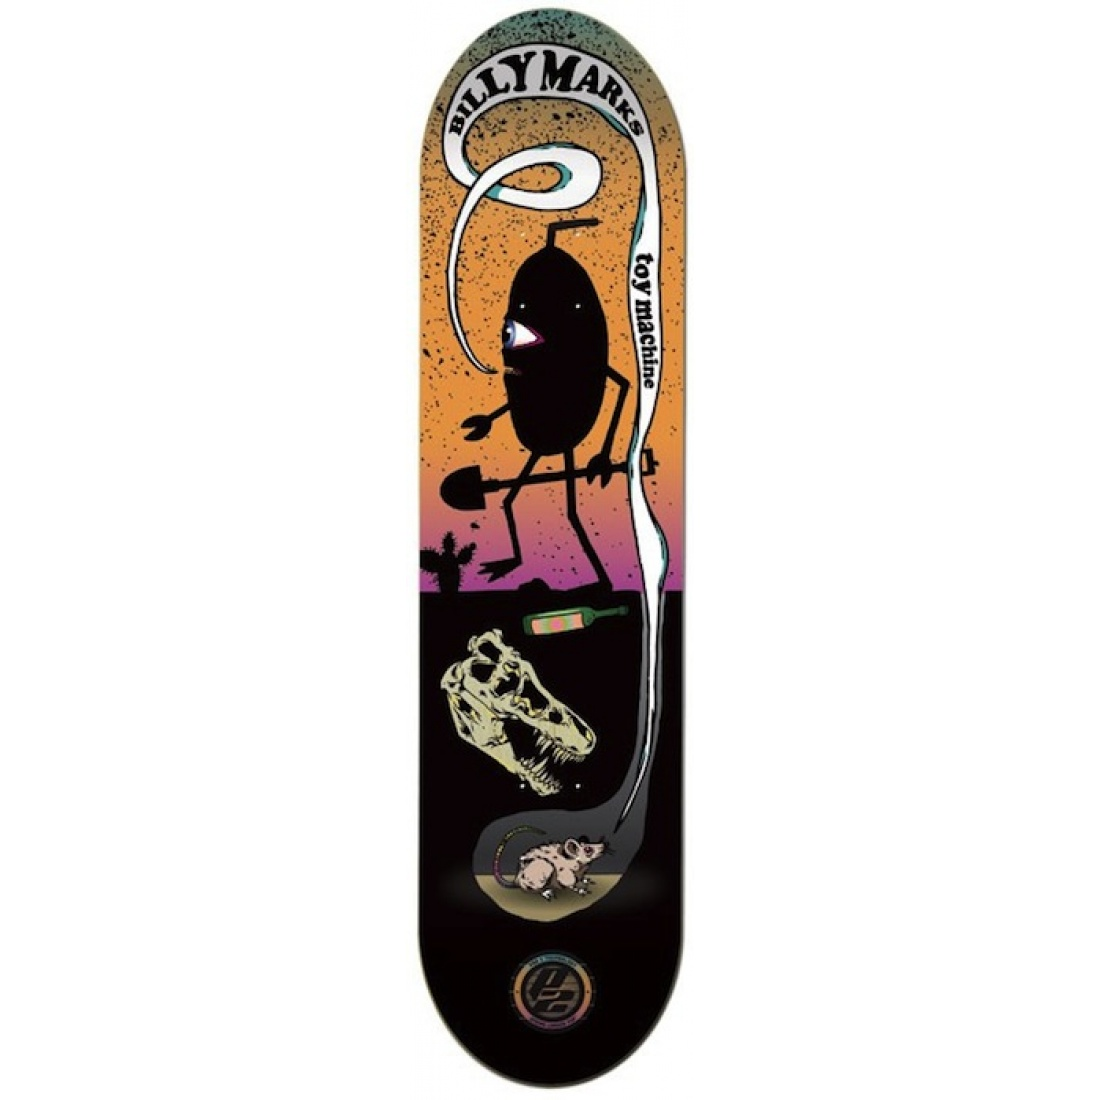 TM-Billy Marks Pro2 7.8 Deck